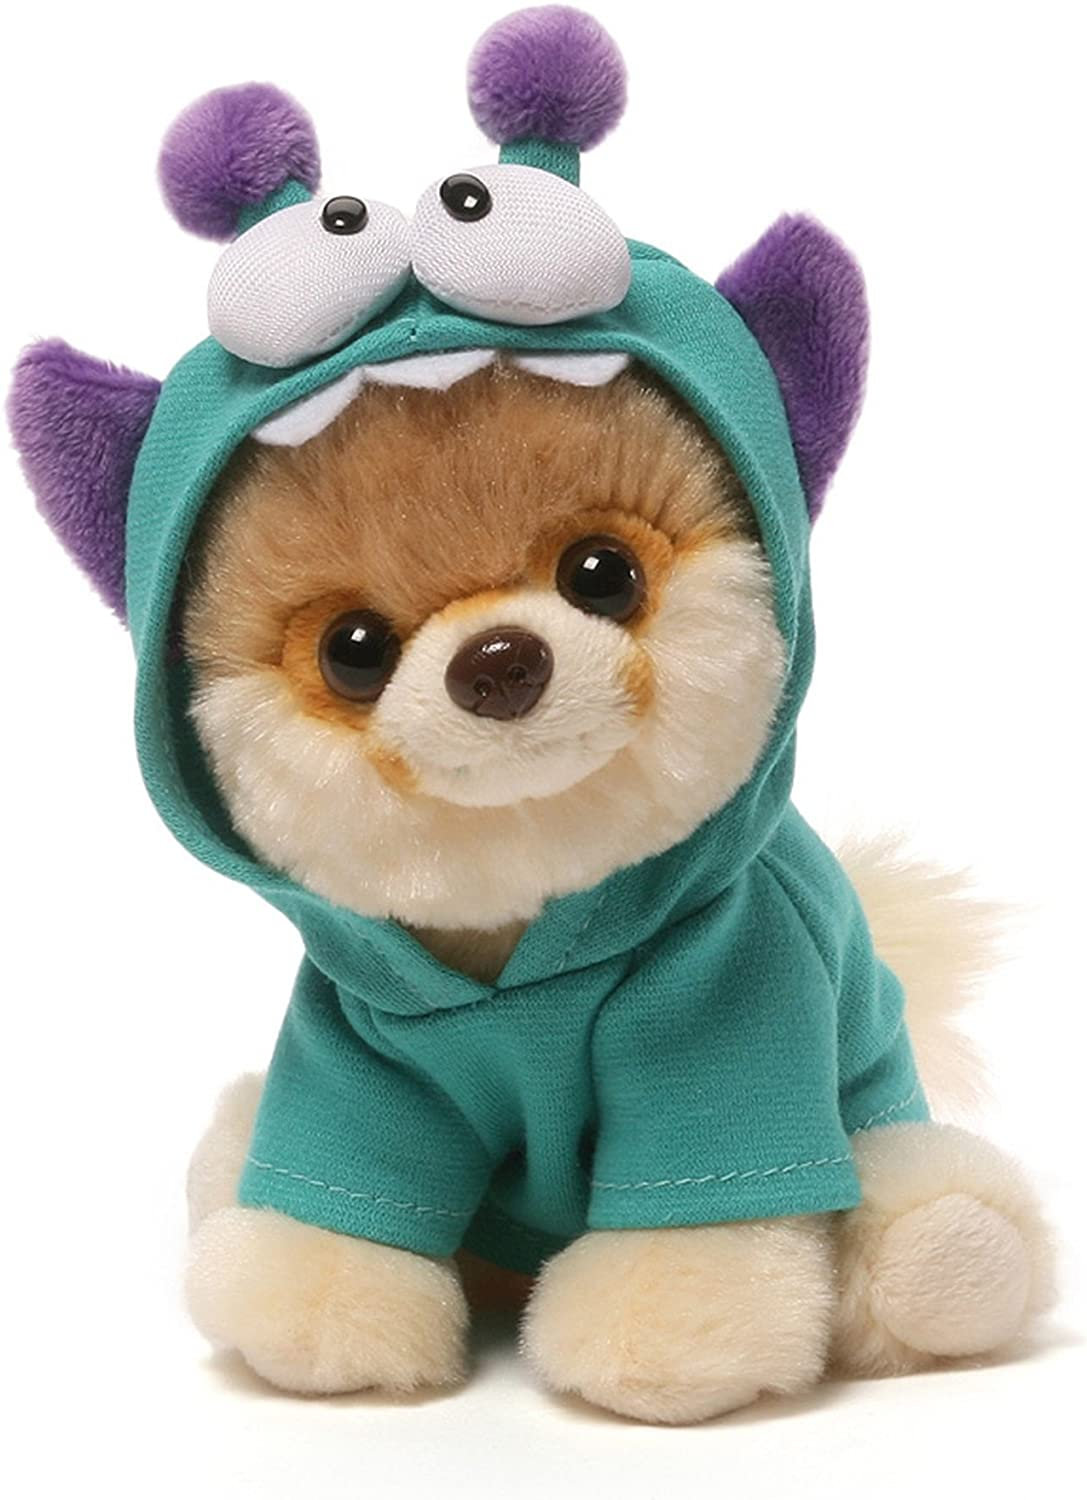 Amazon Com Gund Itty Bitty Boo 034 Monsteroo Dog Stuffed Animal Plush 5 Multi Color Toys Games